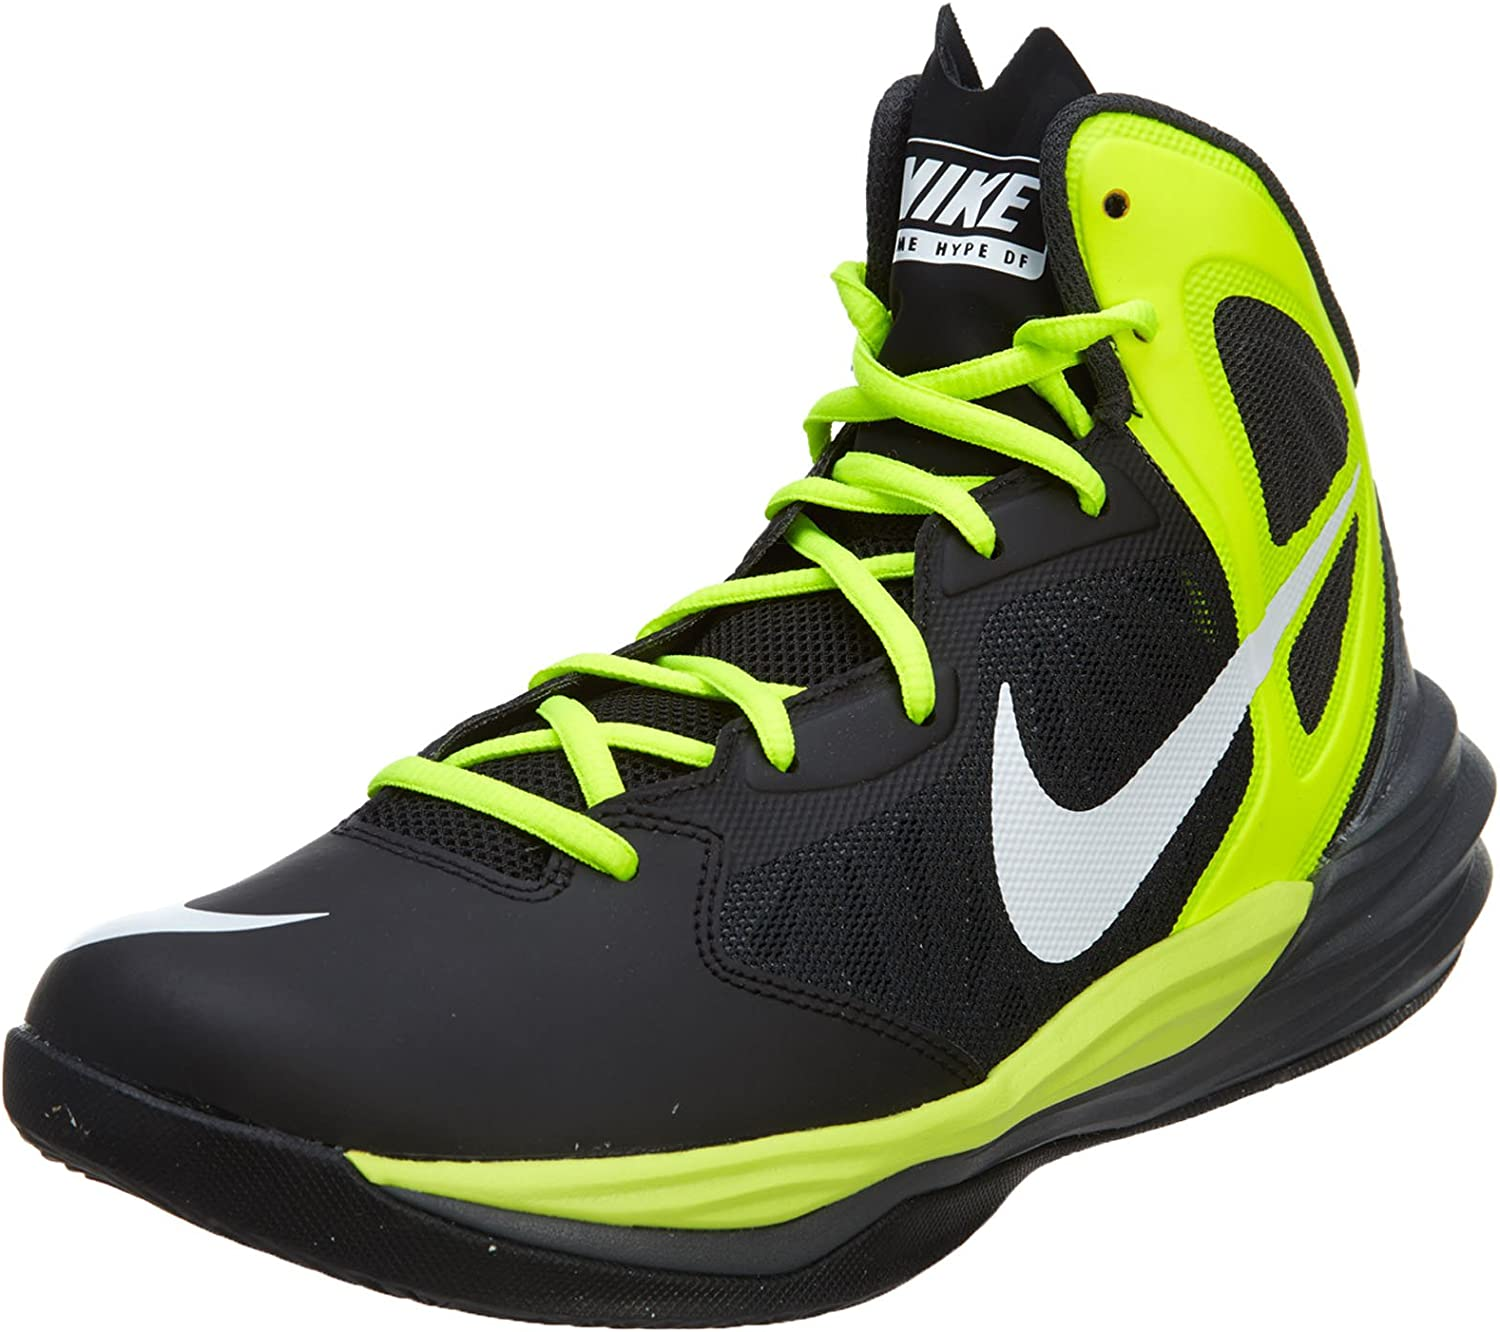 Nike Prime Hype DF II, Chaussures de Sport Basketball Homme